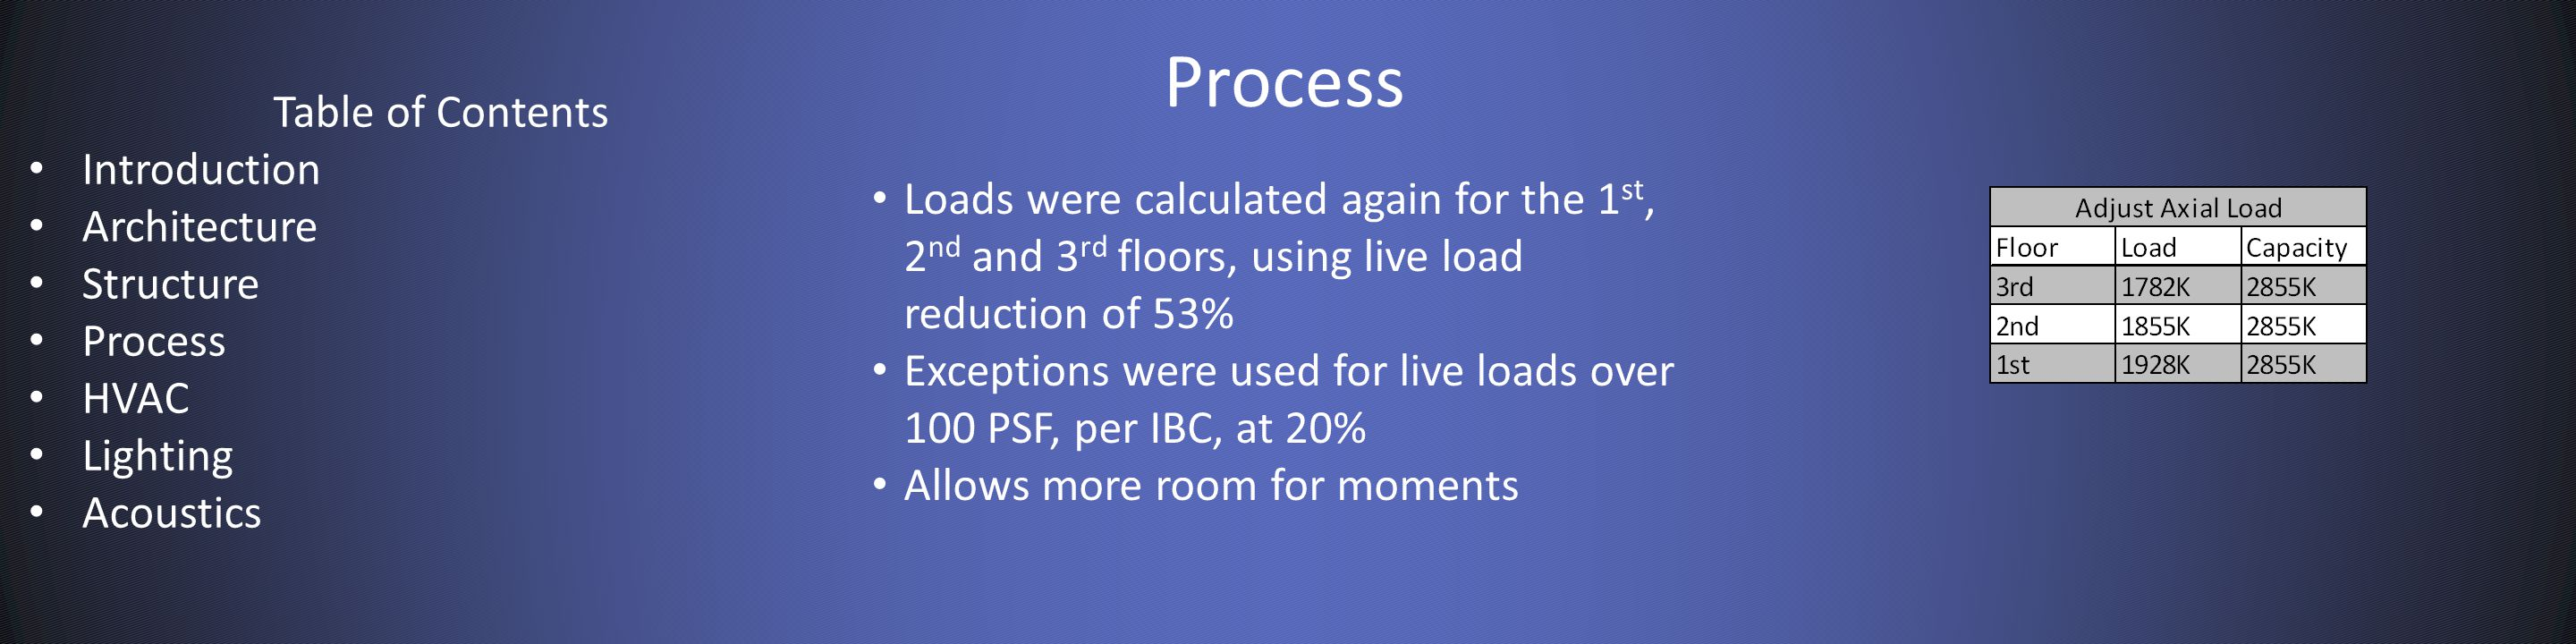 Process Loads were calculated again for the 1 st, 2 nd and 3 rd floors, using live load reduction of 53% Exceptions were used for live loads over 100 PSF, per IBC, at 20% Allows more room for moments Table of Contents Introduction Architecture Structure Process HVAC Lighting Acoustics